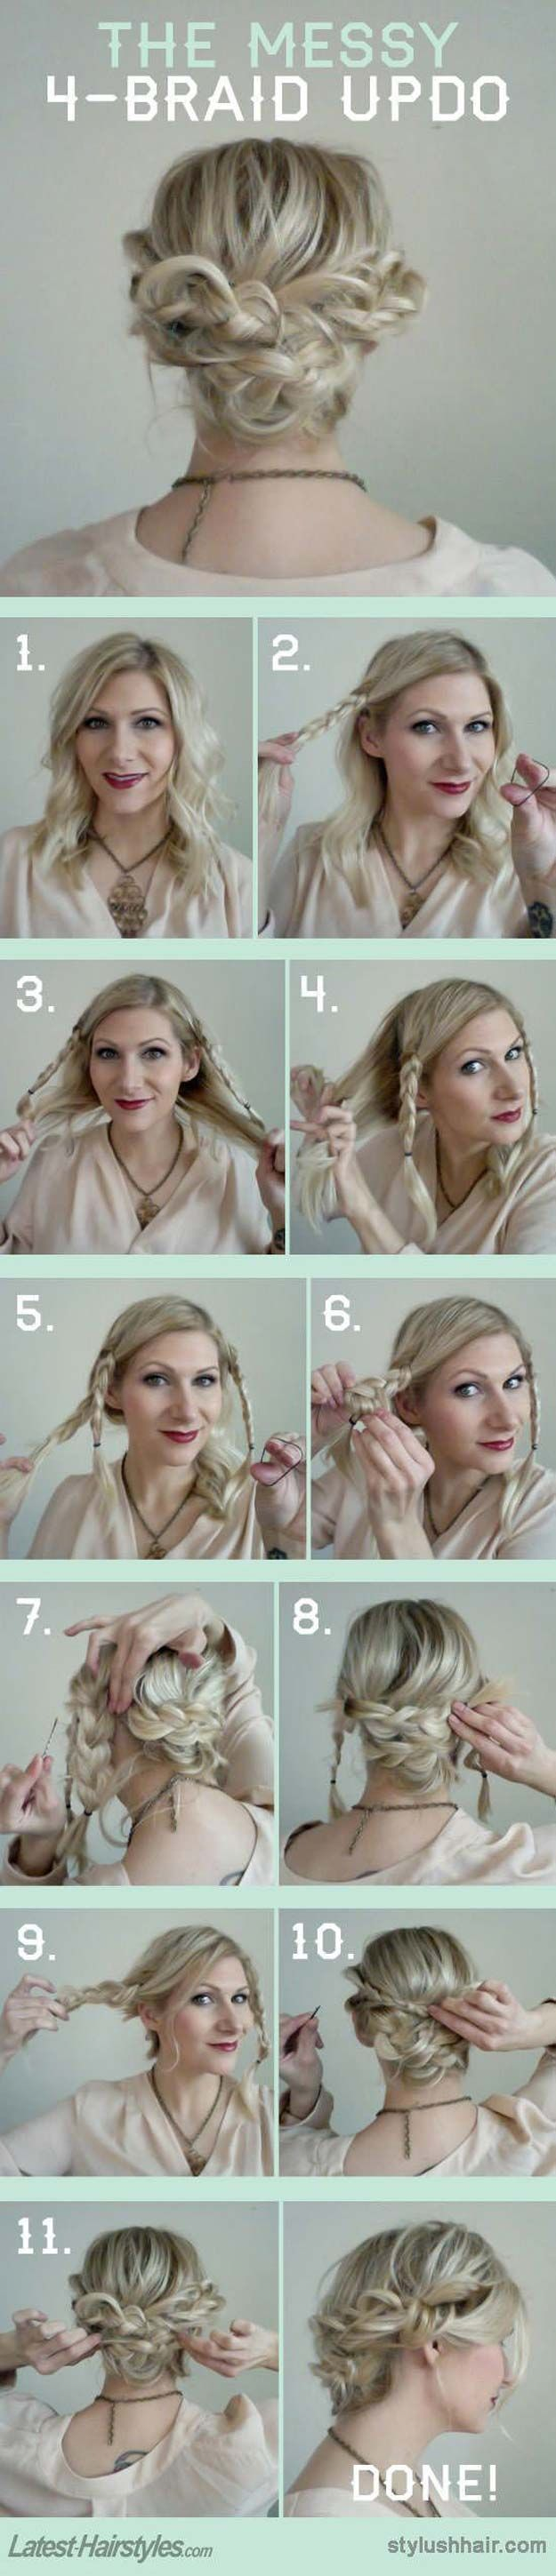 The 48 Best Medium-Length Hairstyles to Steal For Yourself - The Messy 4 Braid Updo - The Best Medium-Length Hairstyles and Haircuts For Thick Hair. These Tutorials Are For Women Looking For An Easy Undo or A Hair Style With Bangs Or With Layers. Check Out The Tutorials On Long Bobs Or For Curly and Fine Hair. These Medium-Length Hairstyles and Haircuts Will Work For Round Faces As Well. Try These If You Have Blonde Hair, Brunette Hair, Just Got Highlights Or A Balayage…